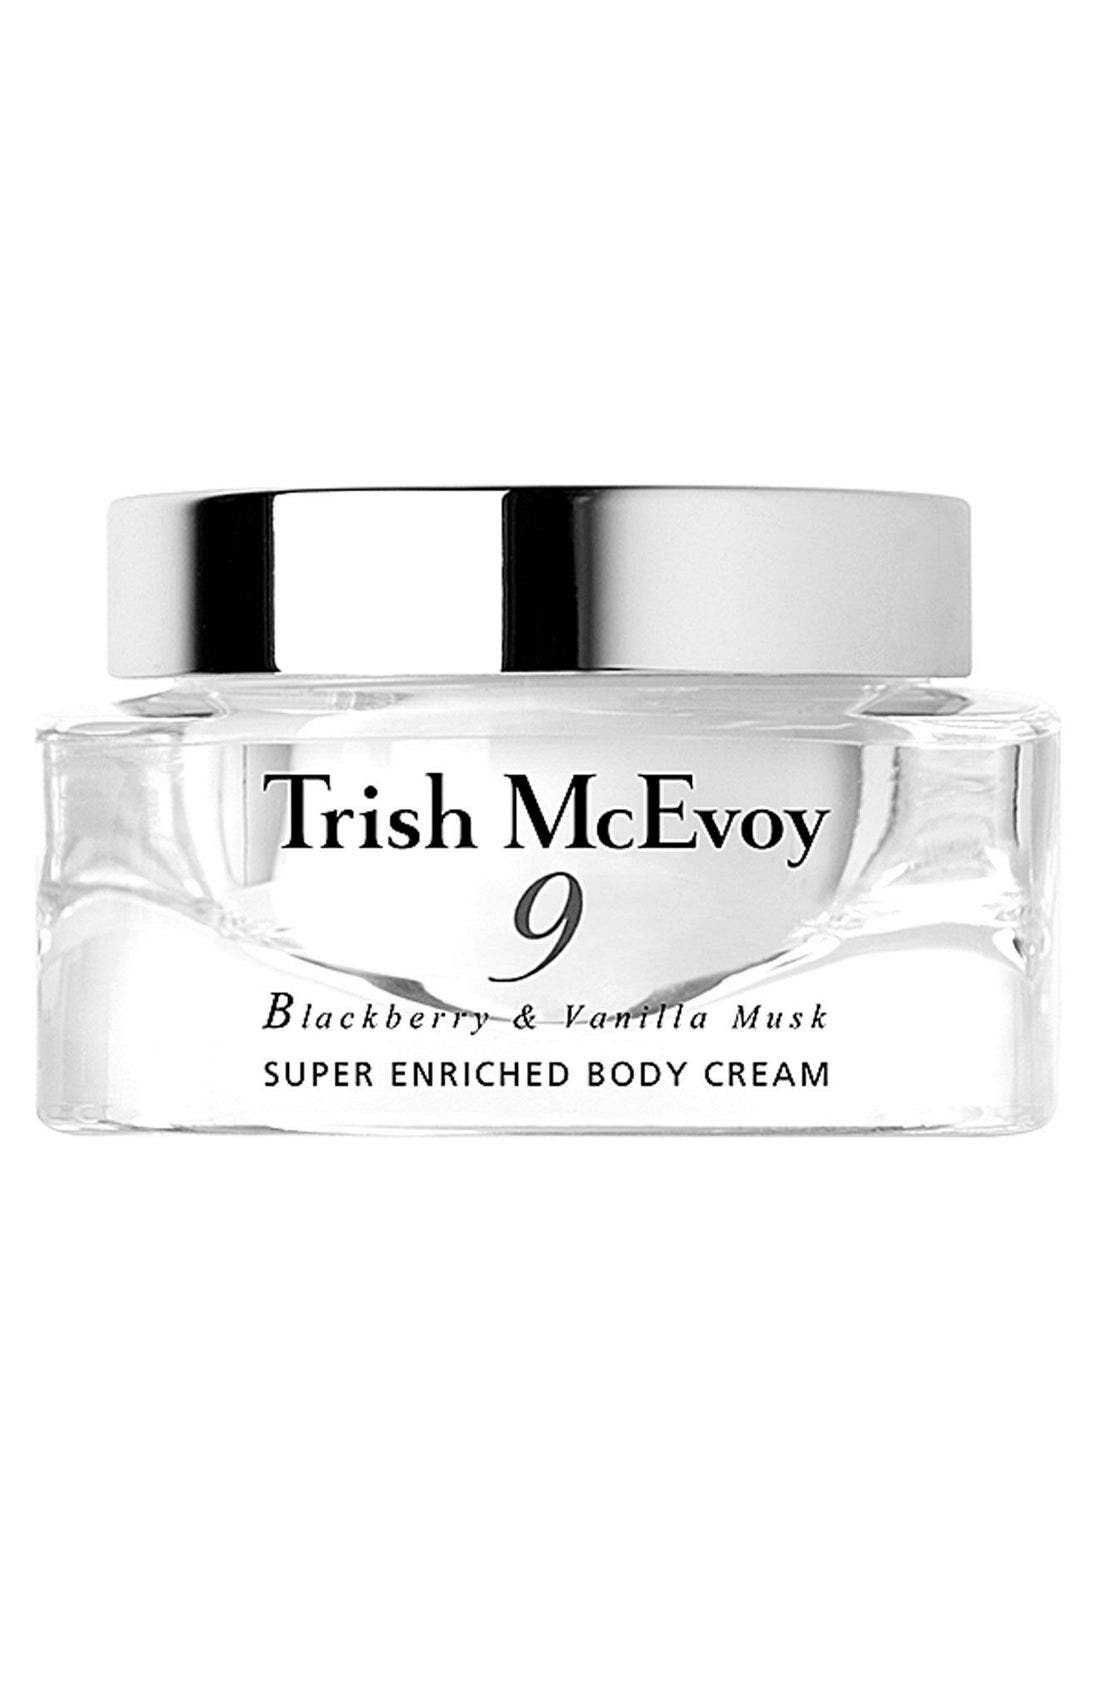 Trish McEvoy No. 9 Blackberry & Vanilla Musk Super Enriched Body Cream